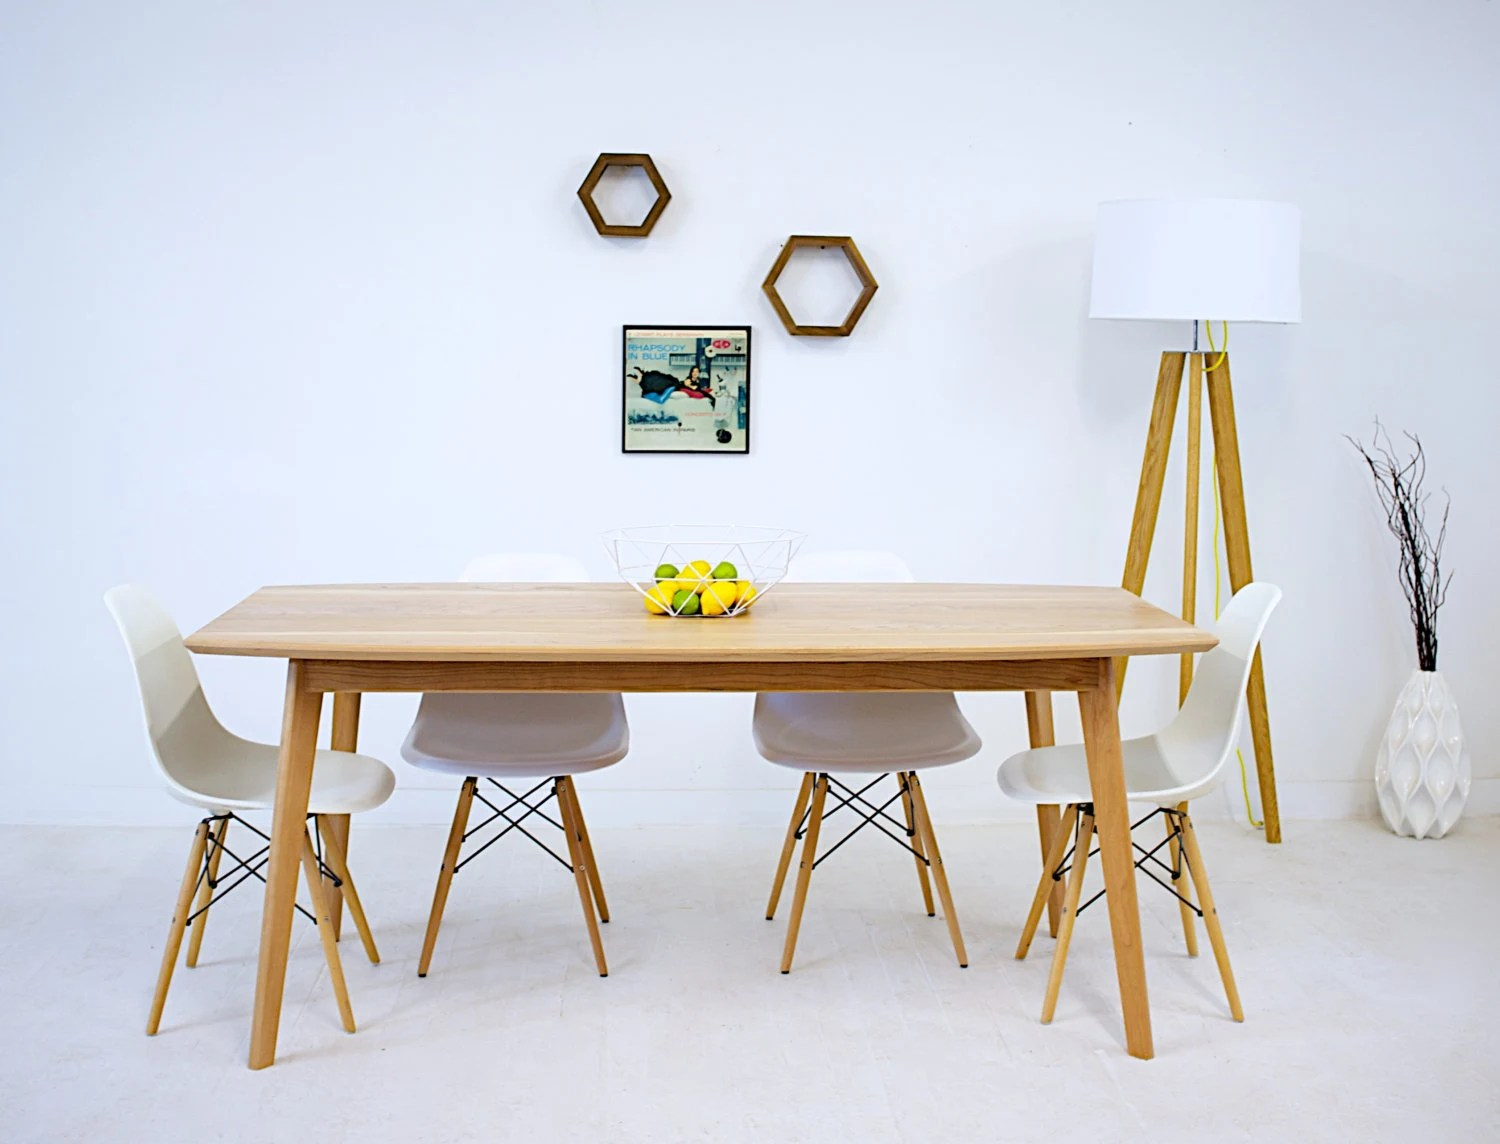 Small Dining Table Kitchen Table Dining Table Modern Dining Table Small Dining Table Midcentury Modern Modern Table